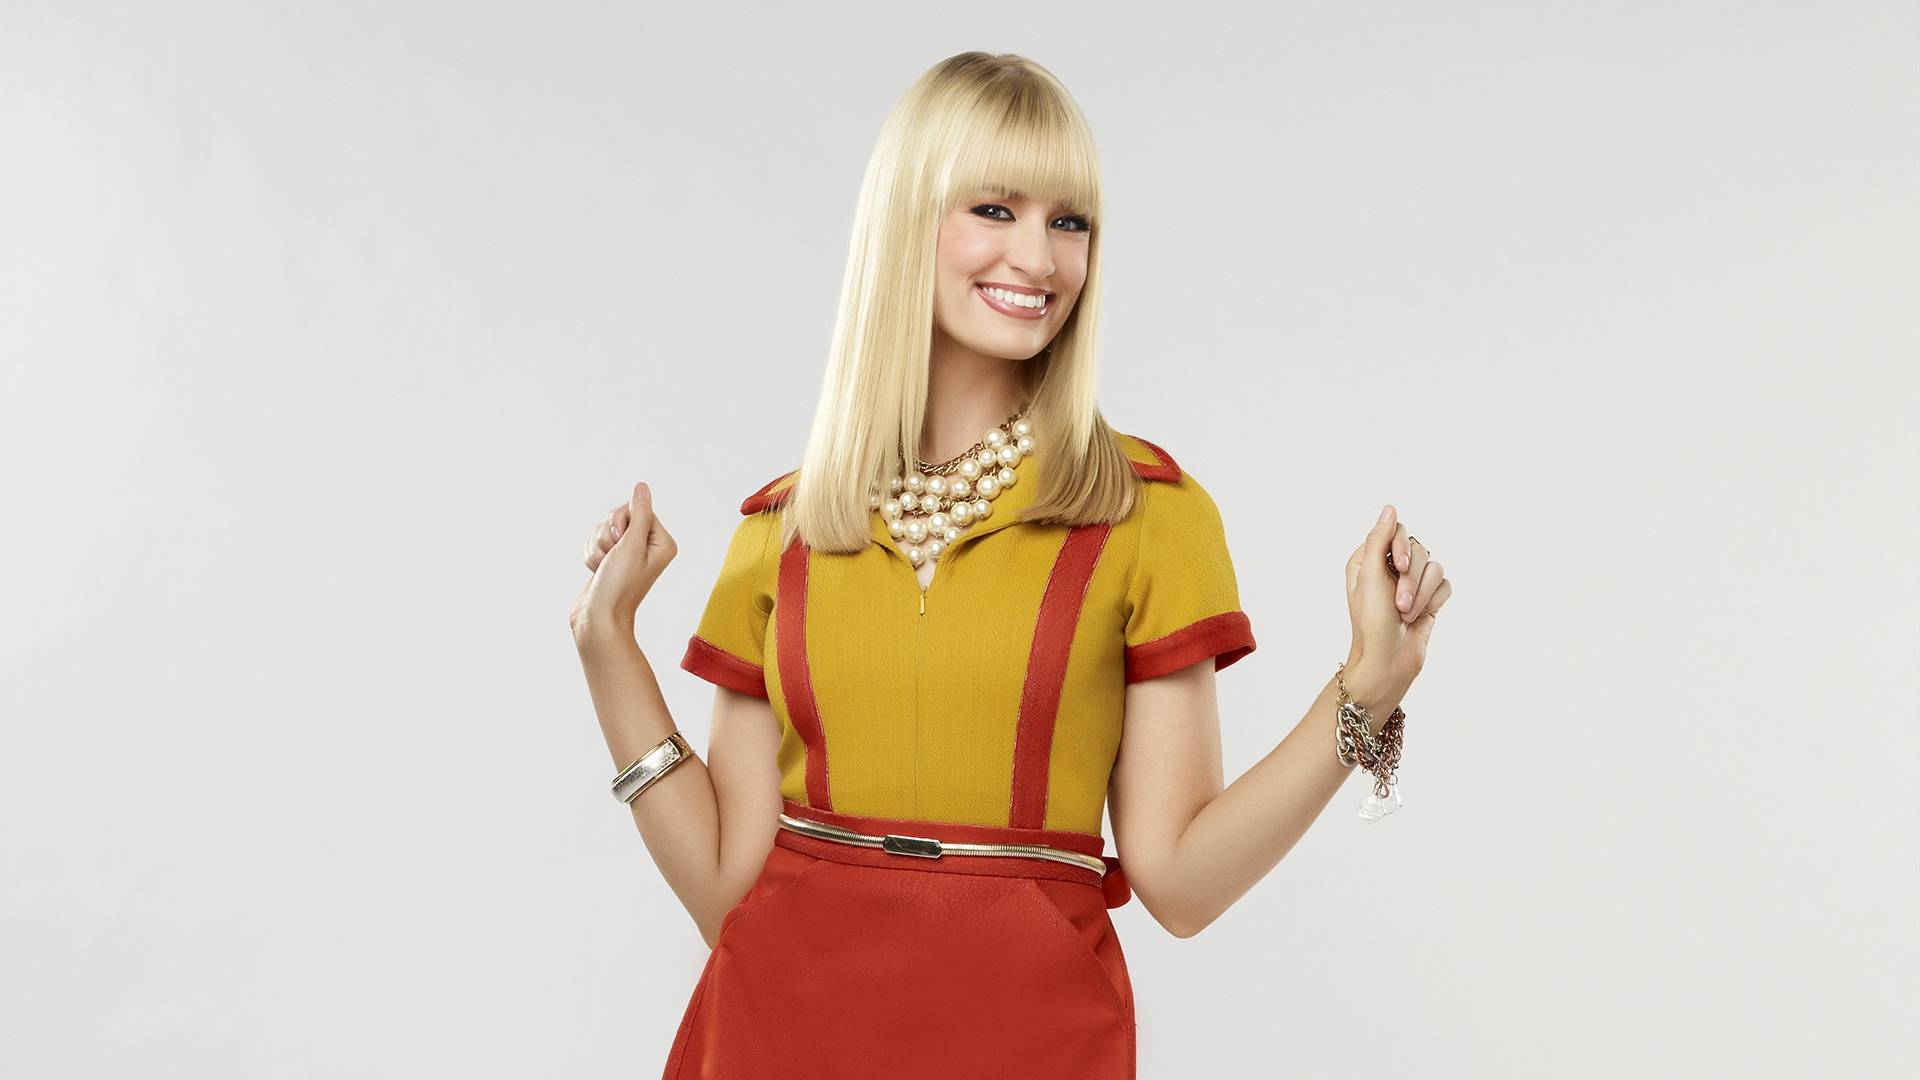 1920x1080 - Beth Behrs Wallpapers 9